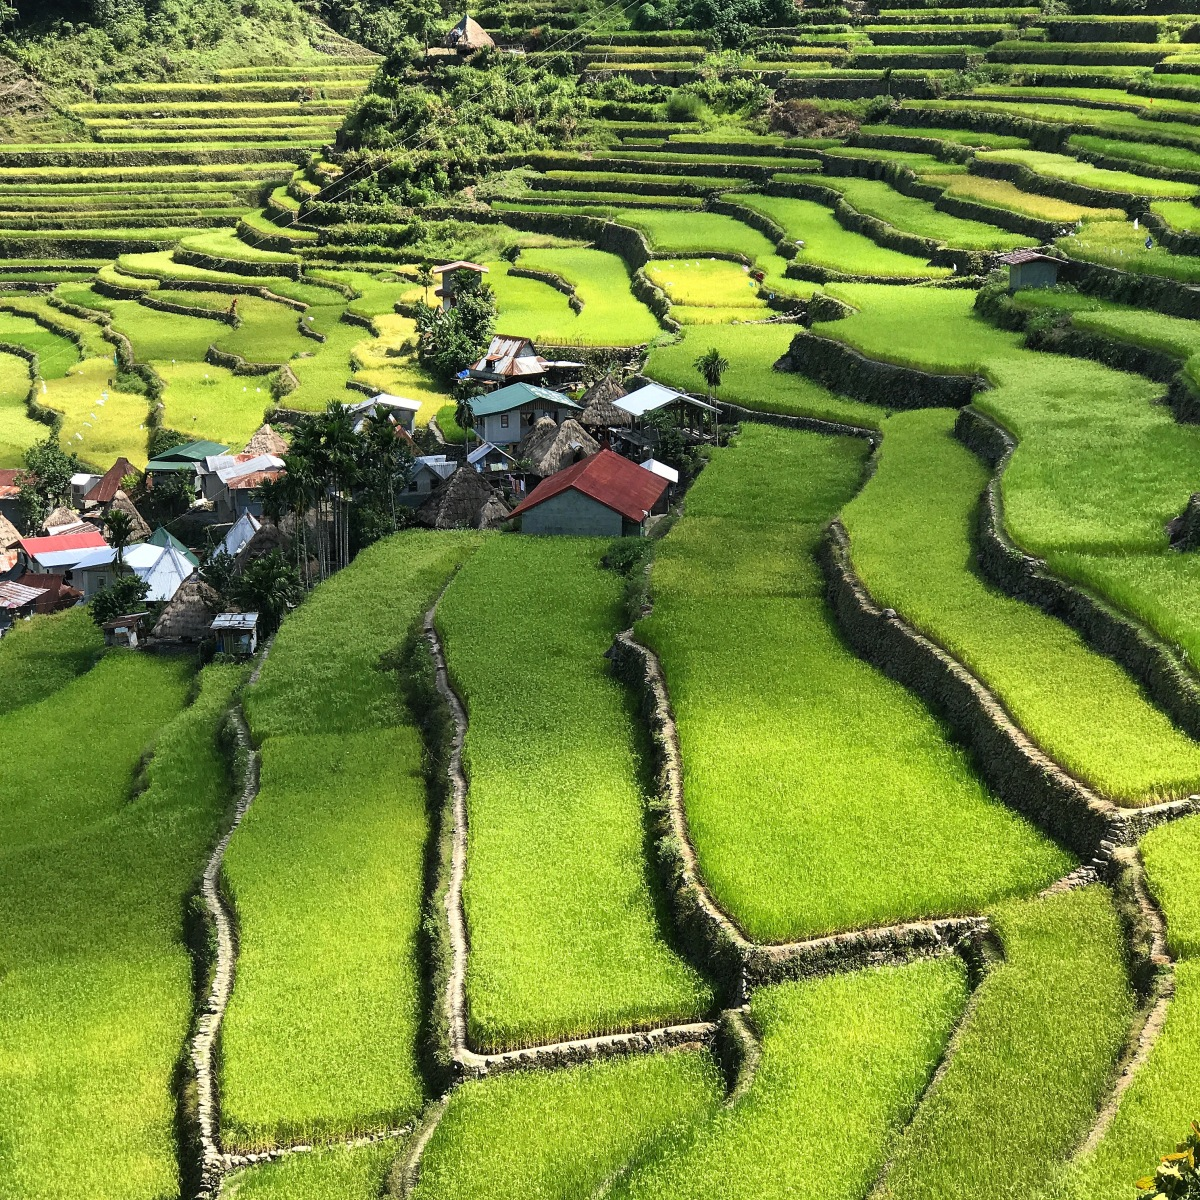 Ifugao Rice Terraces, Philippines